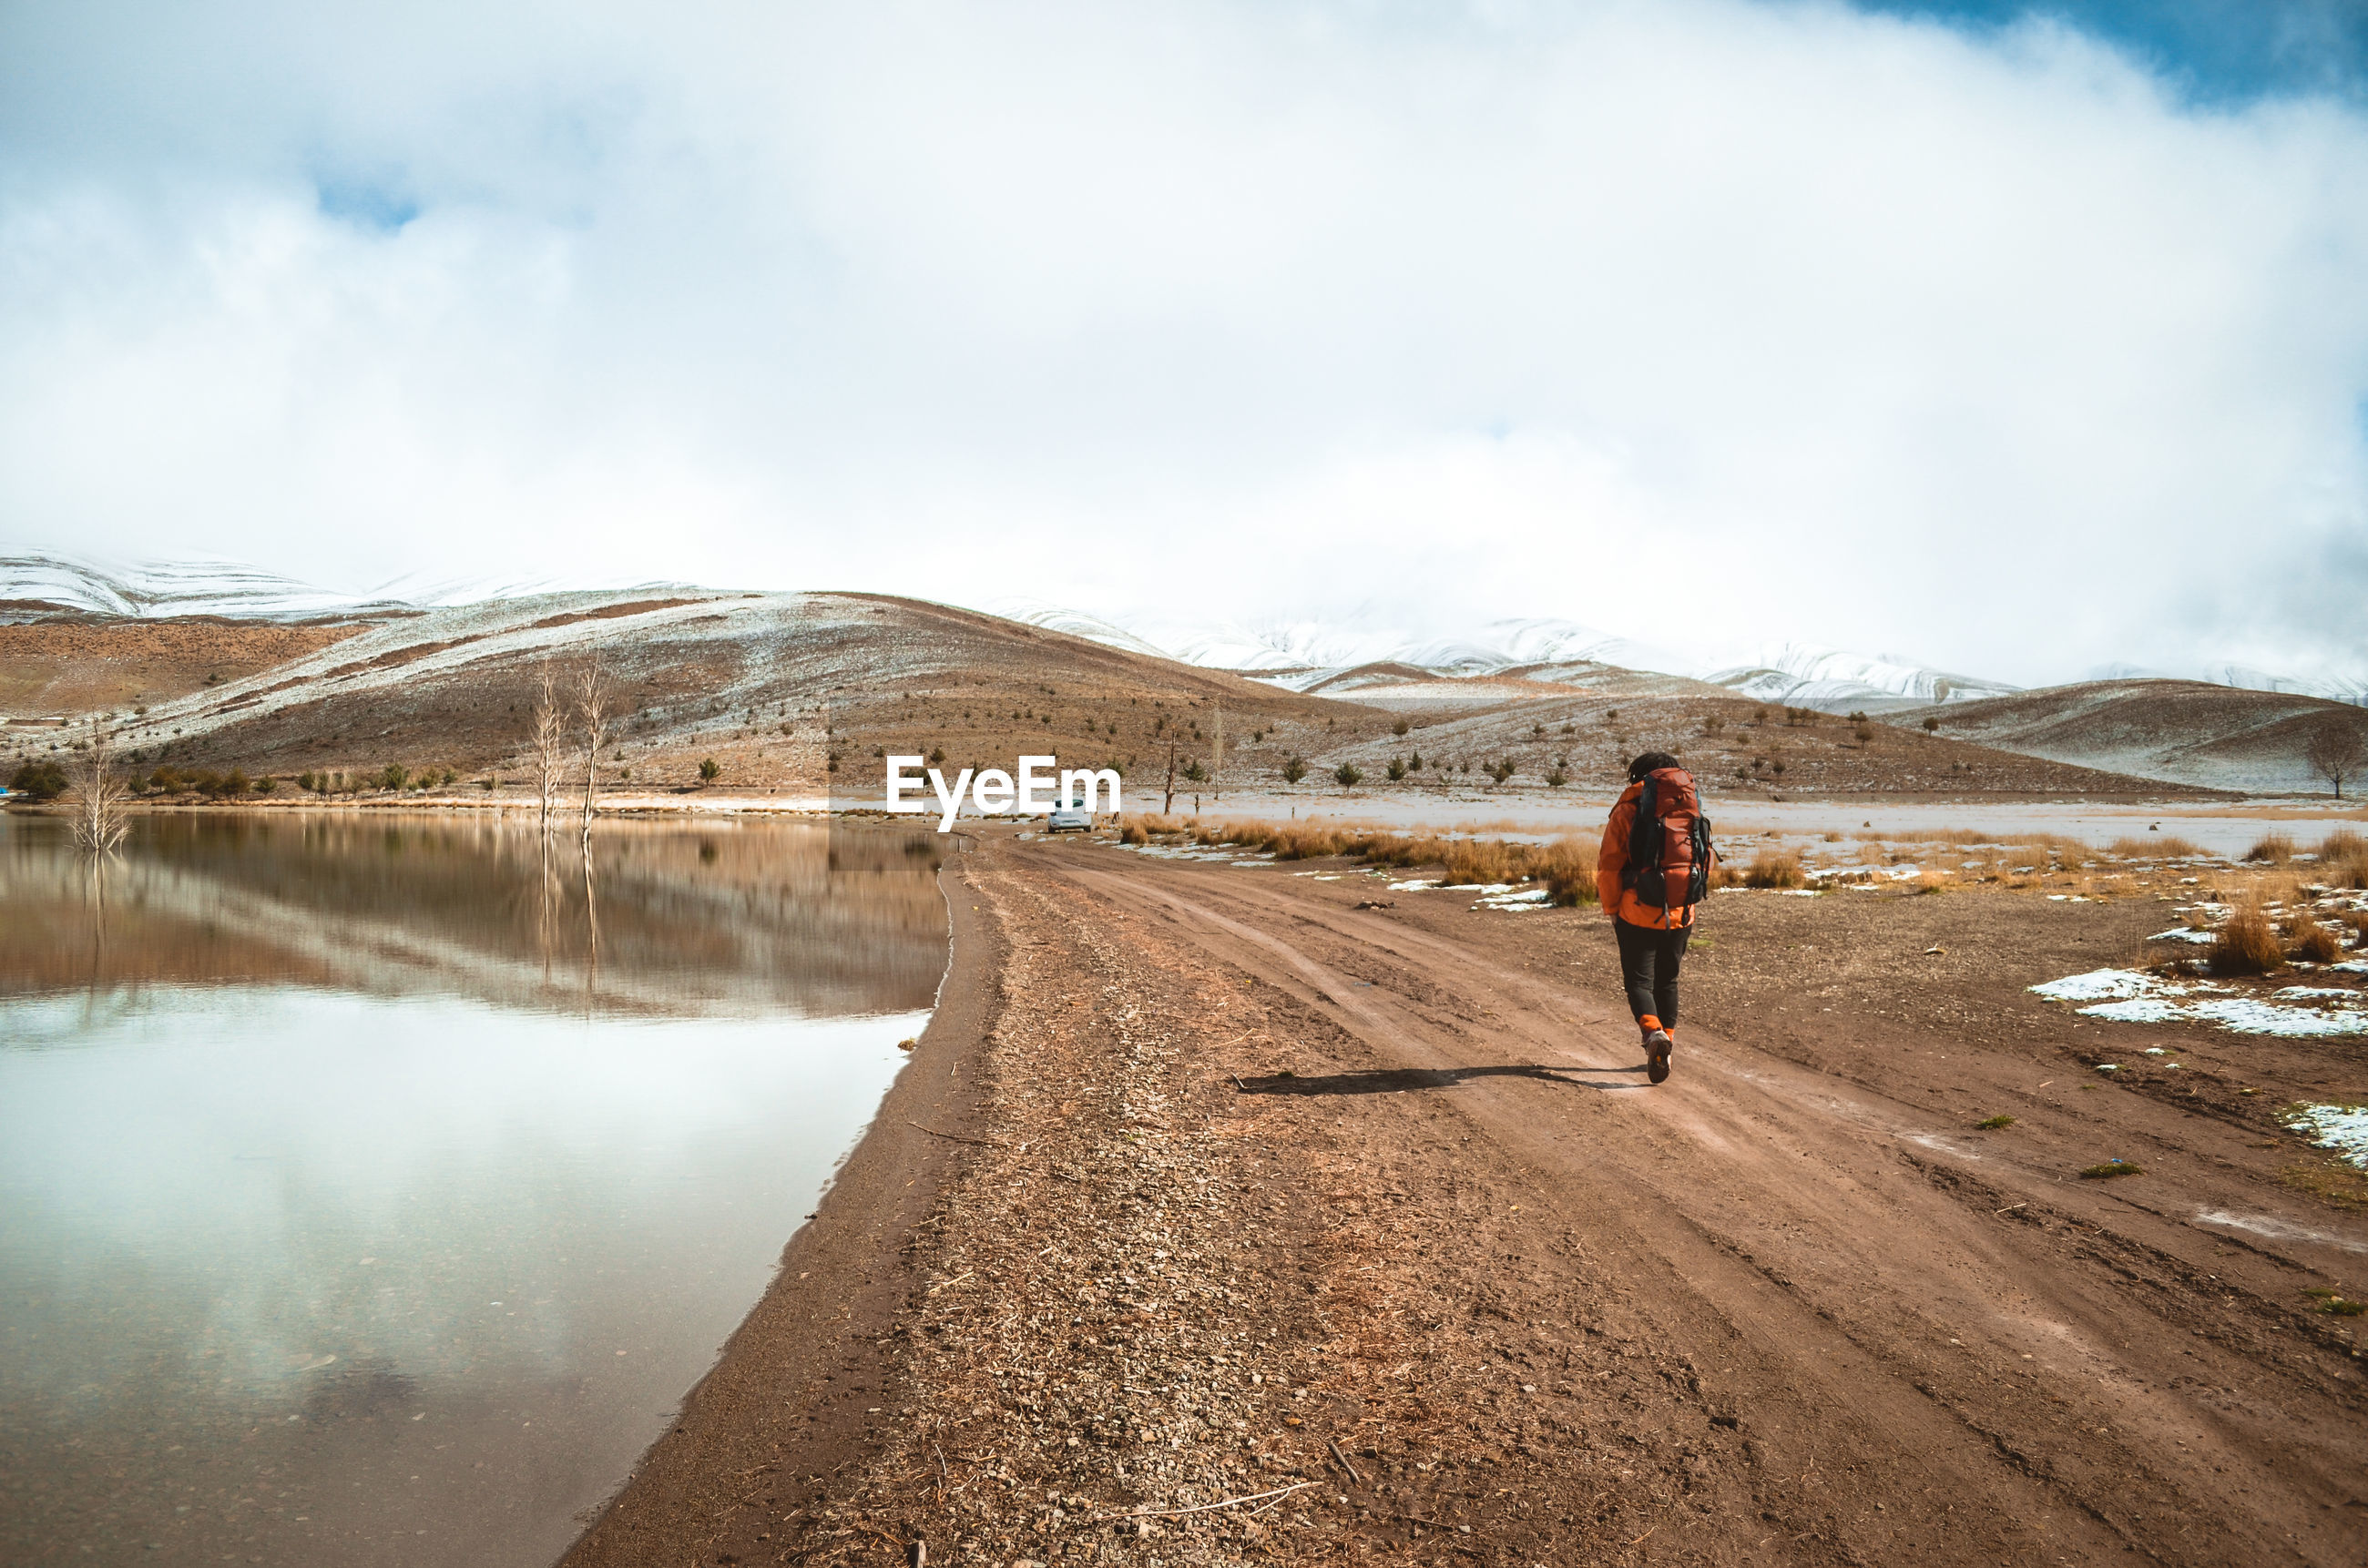 Rear view of man walking on dirt road against cloudy sky